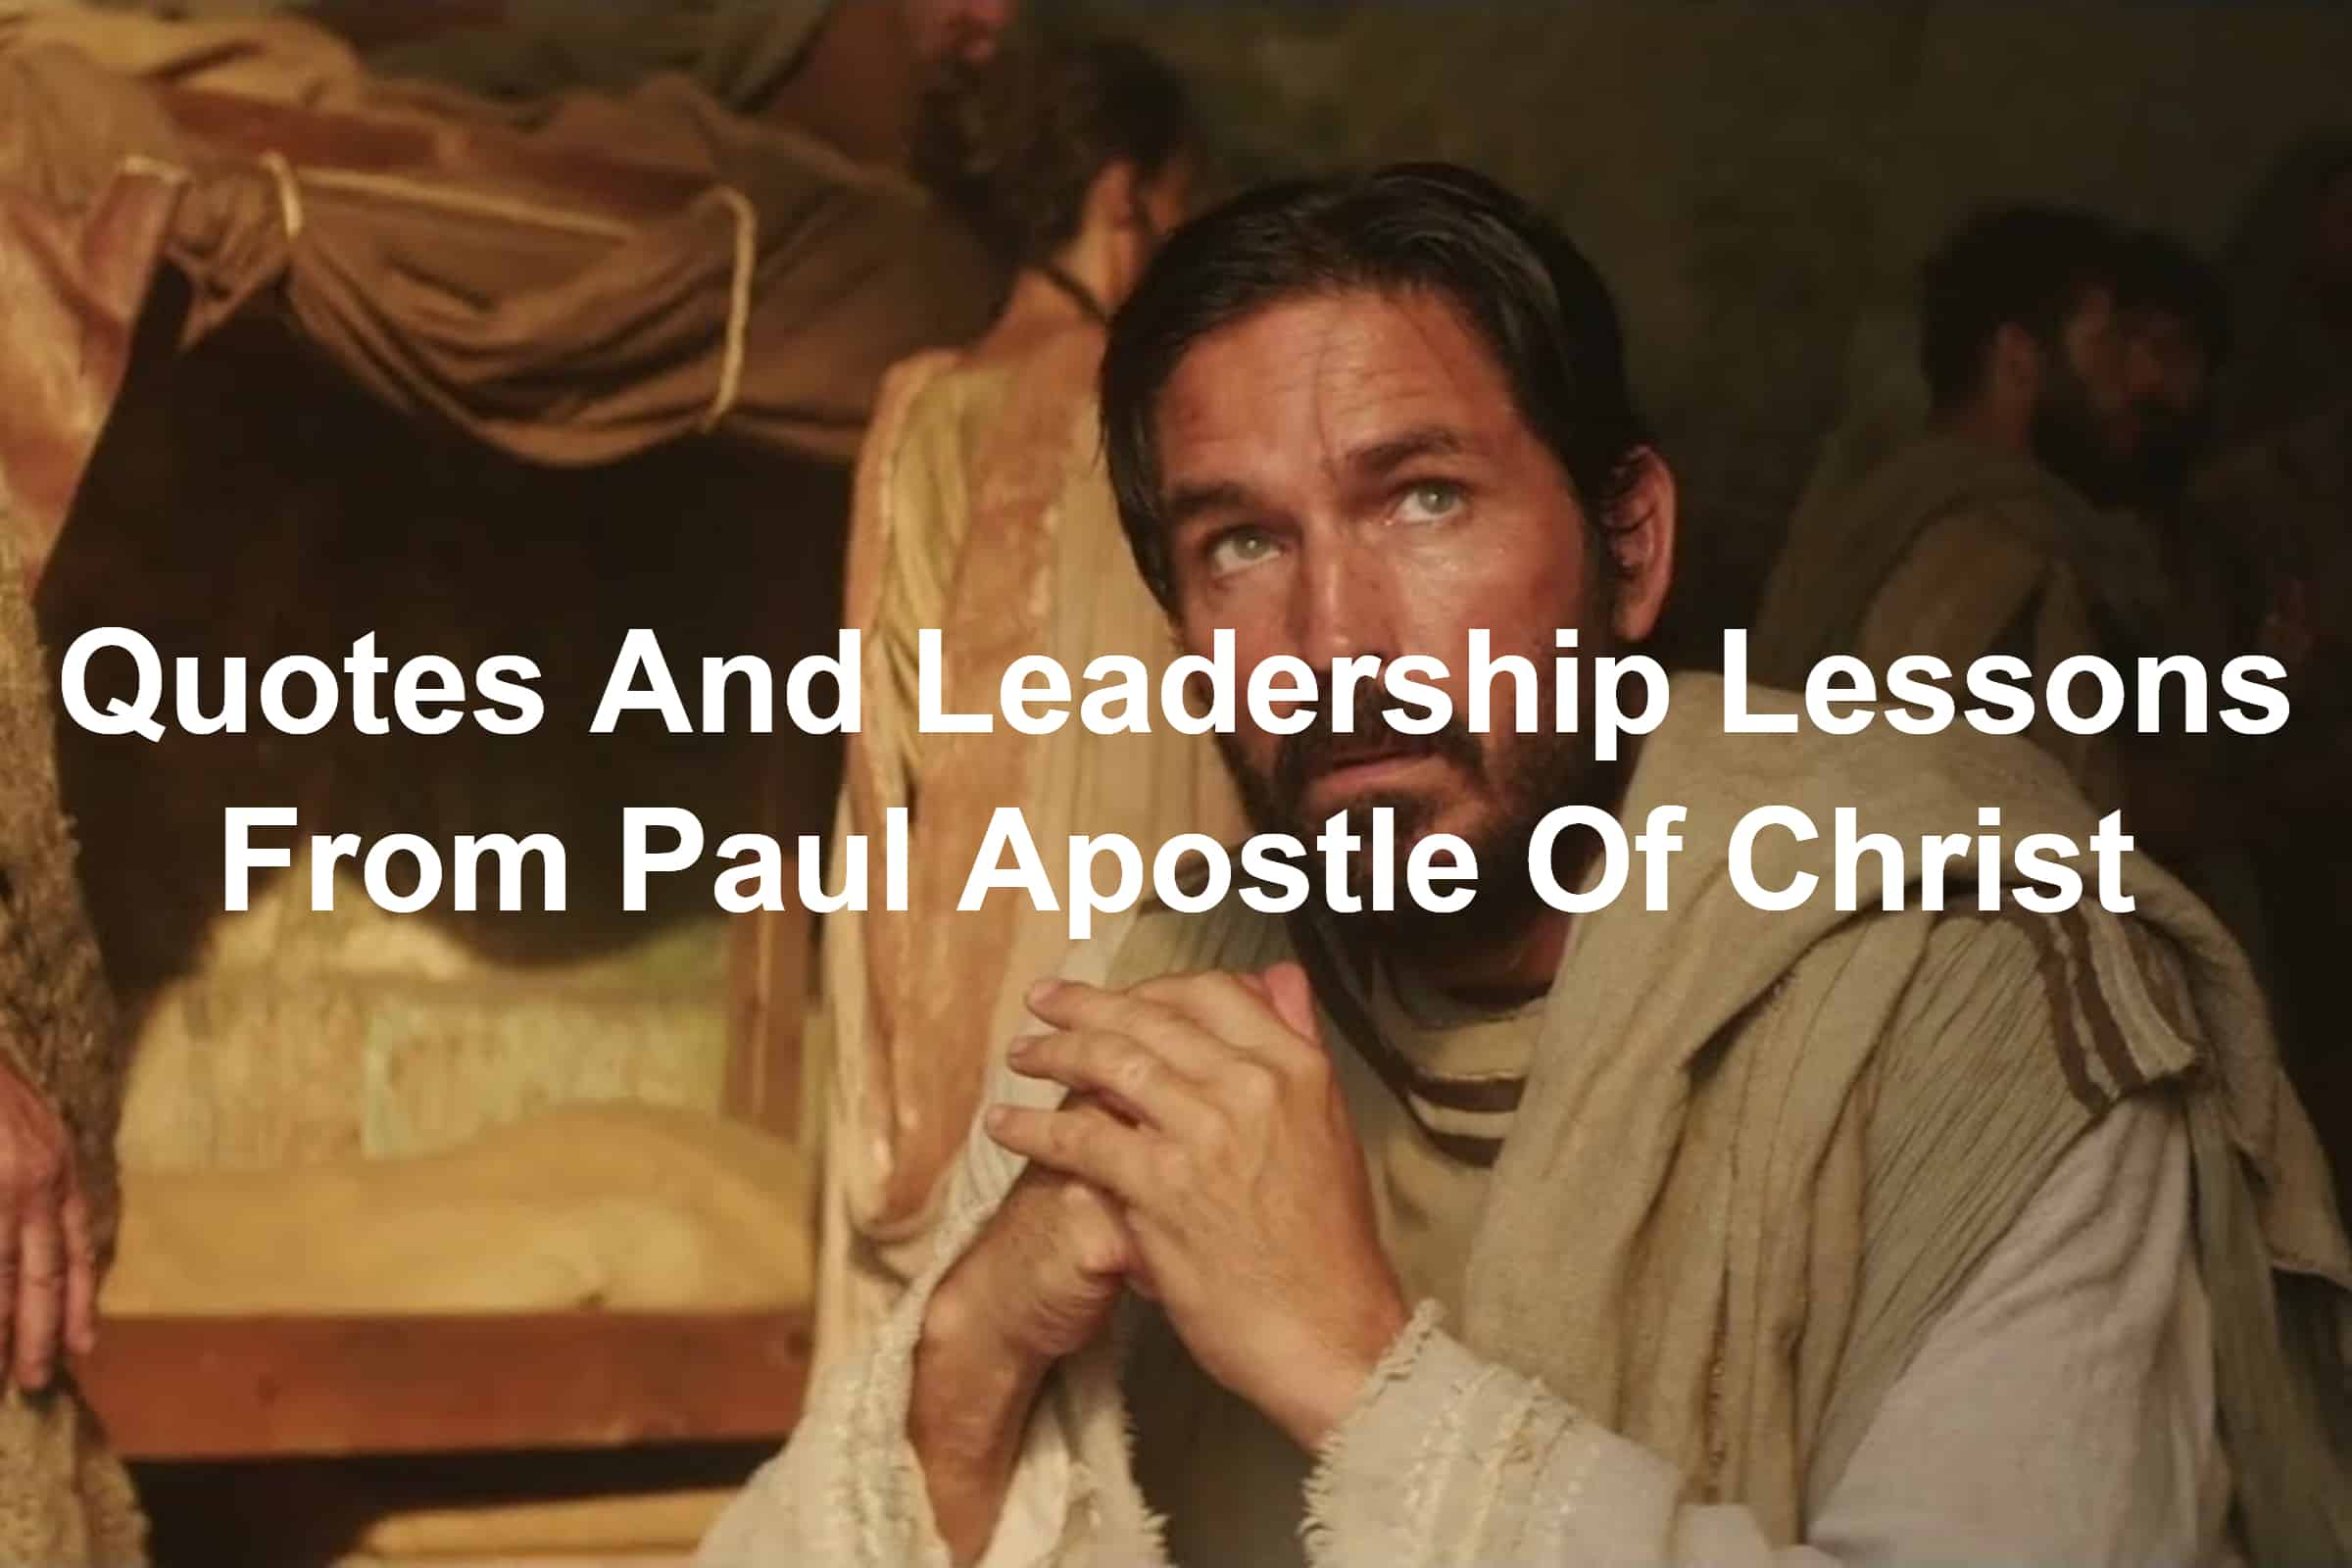 Jim Caviezel as Luke the Physician In Paul Apostle Of Christ Leadership Lessons